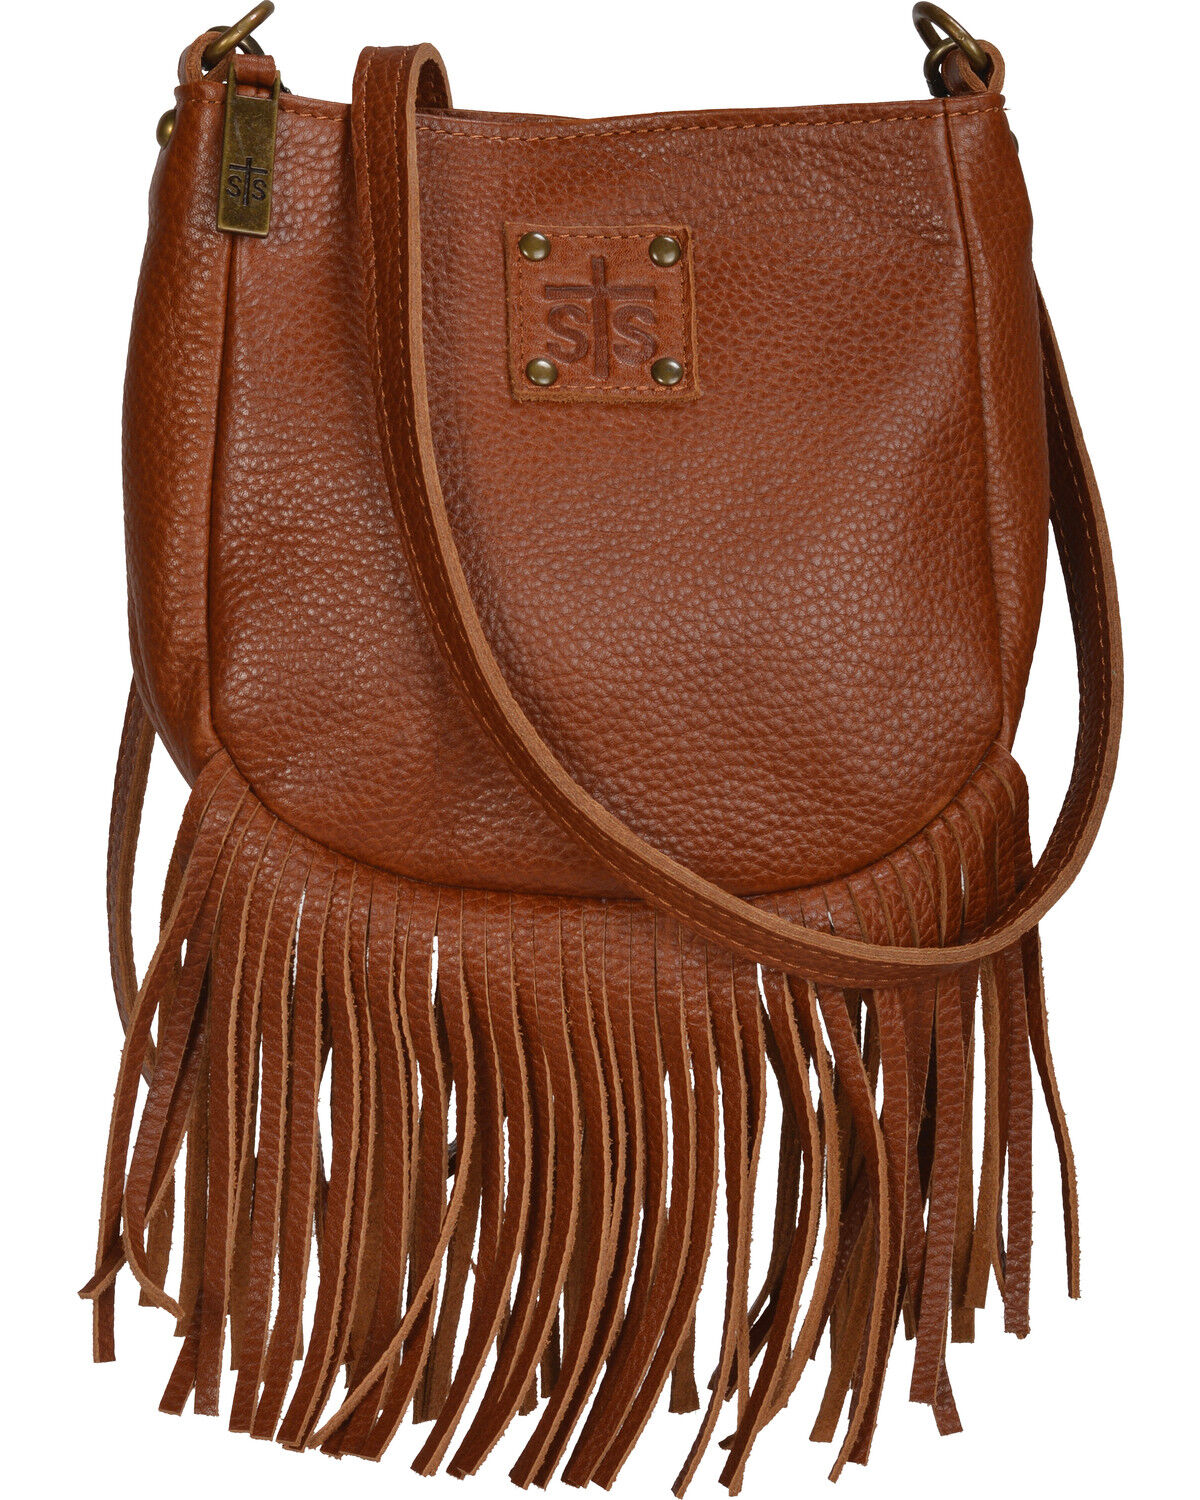 Country outfitter handbag giveaways